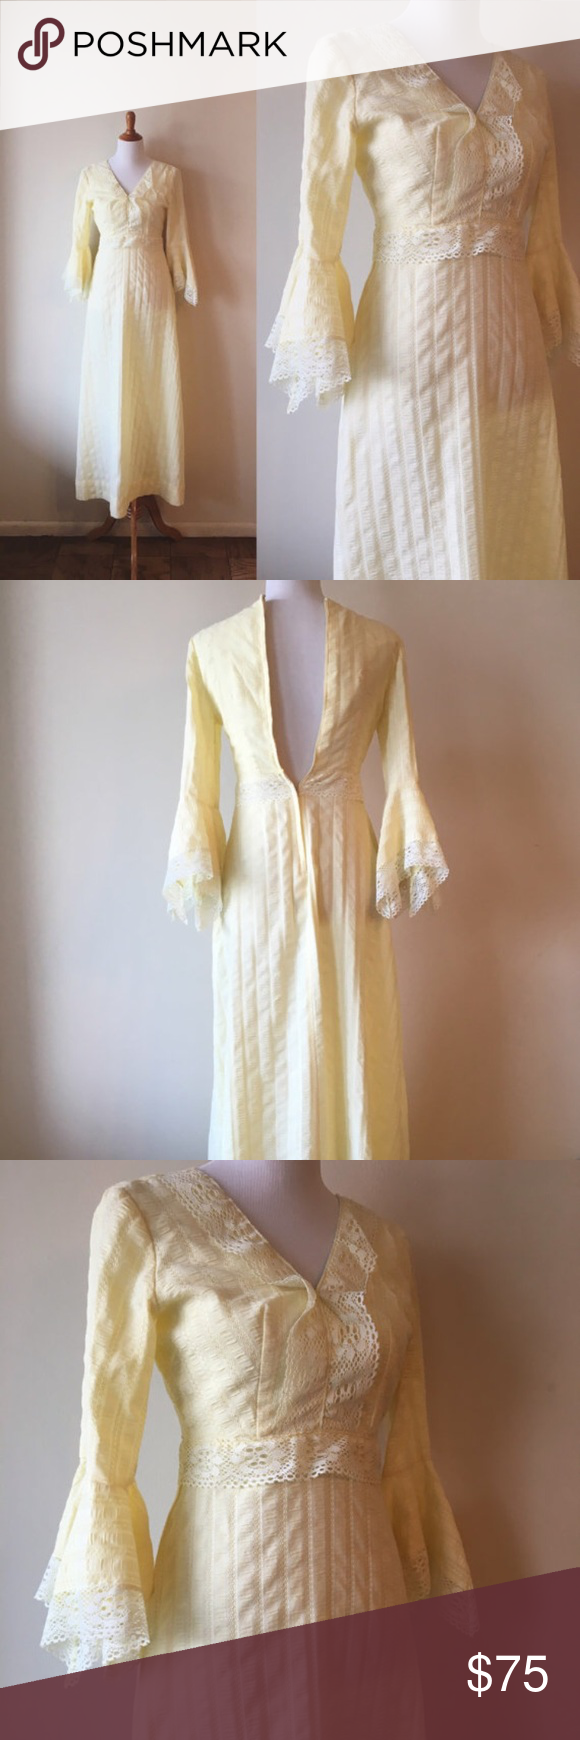 """Vintage wedding maxi dress. Medieval style dress Vintage maxi wedding dress.   Circa: 1970's Label: A Francis Gale by Parkway dress. Made in Canada Material: 50% polyester, 50% cotton Condition: The dress shows normal wear. No visible holes or tears to note.  Modern size: XS/S  Measurements:  Shoulders: 14"""" Bust: 32"""" Waist: 30"""" Hips: 42"""" Sleeve: 23"""" Length from shoulder to hem: 54""""  Each garment is soaked or dry cleaned before going into the shop. Dresses Maxi"""